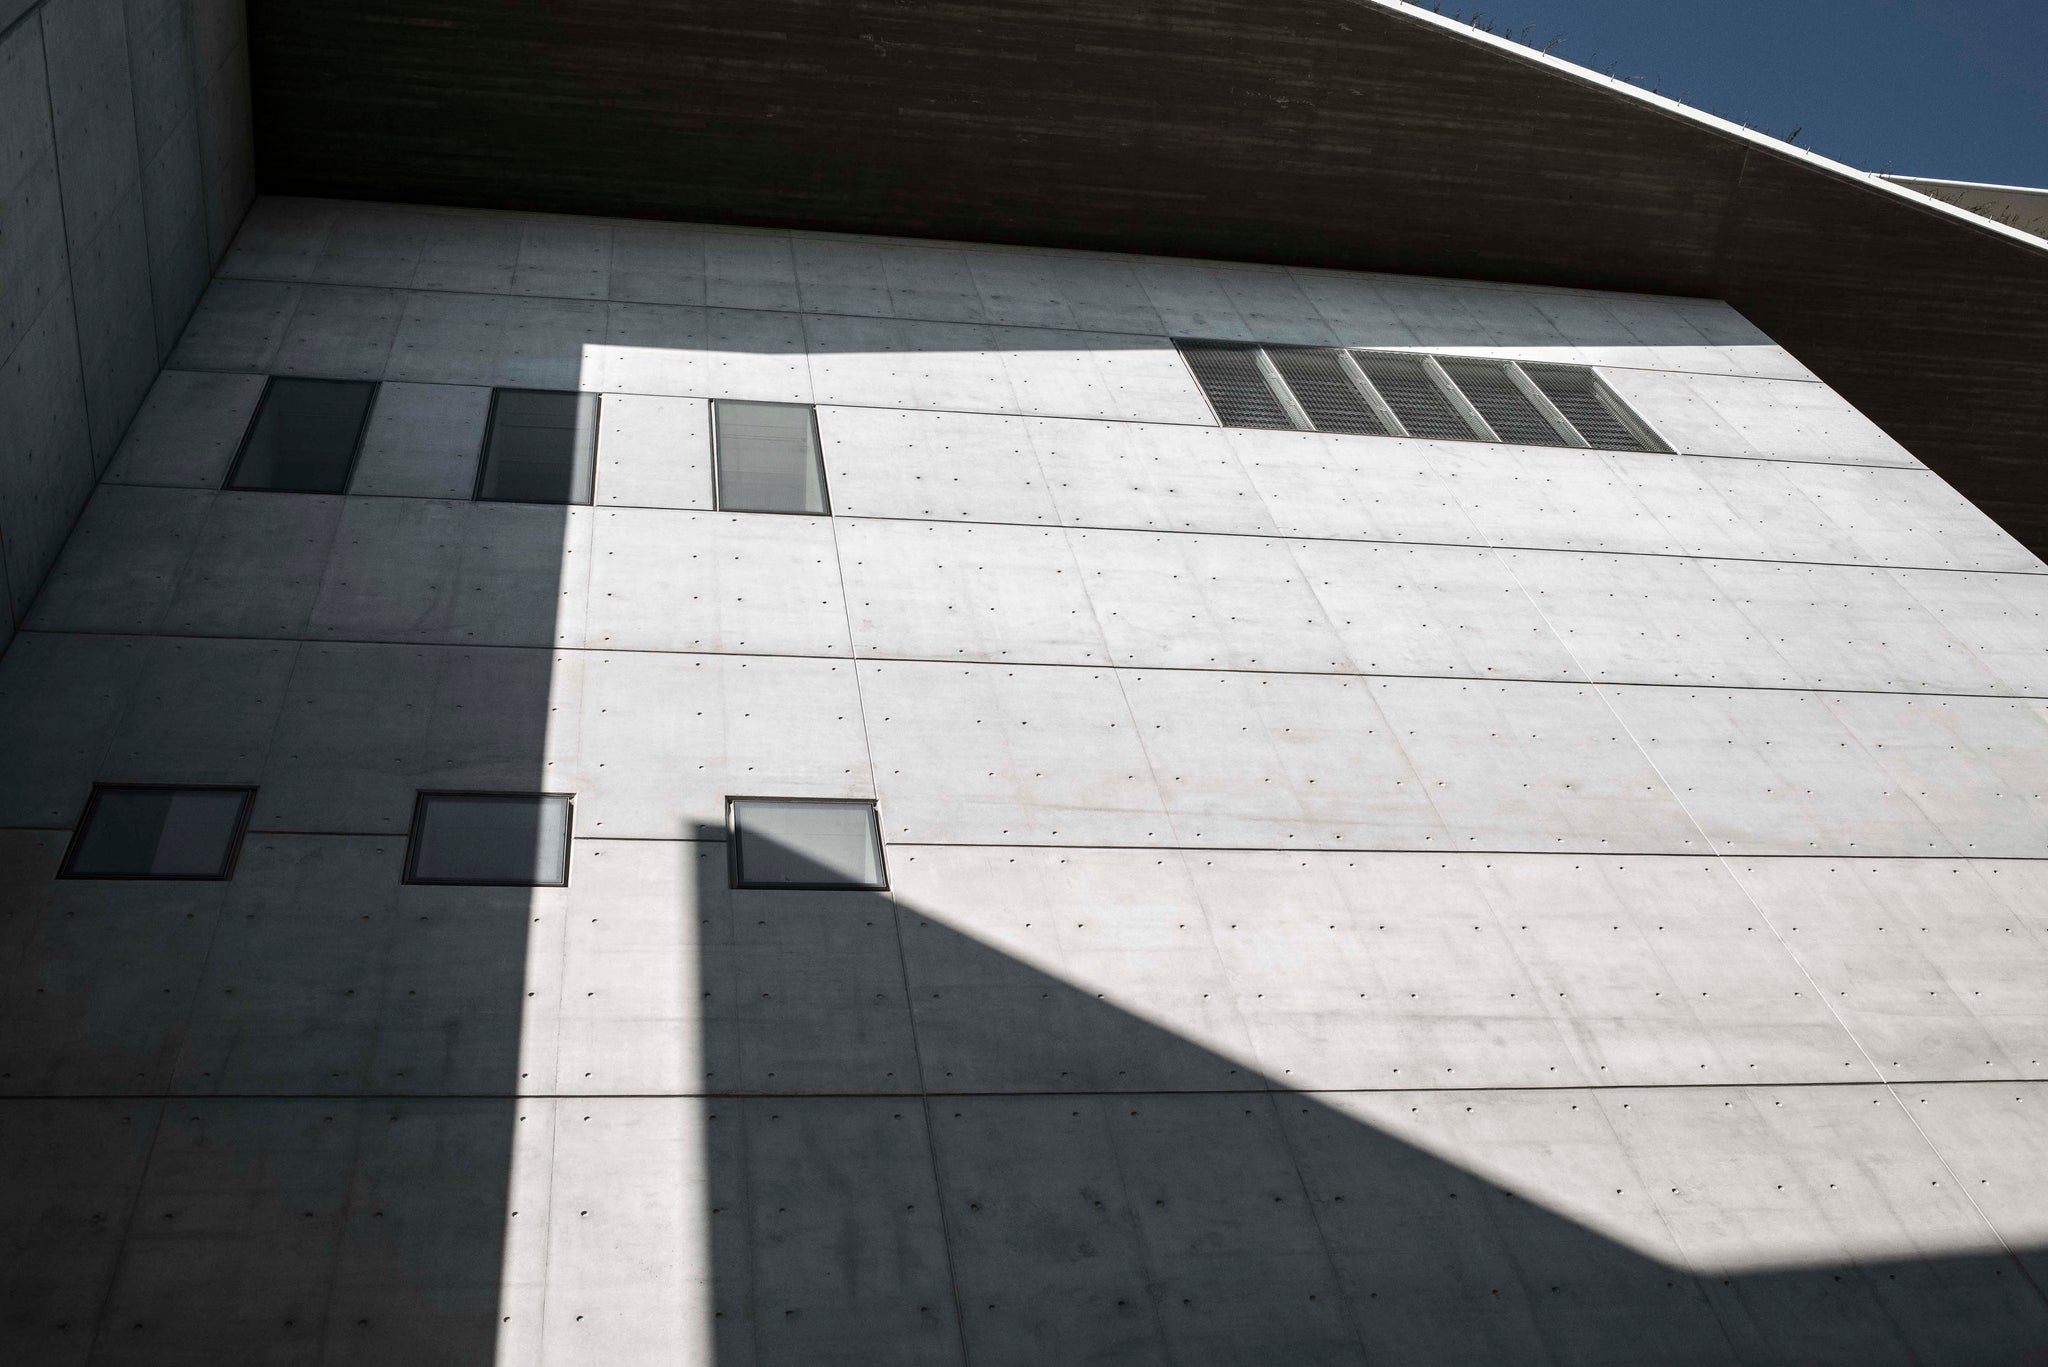 Stavros Niarchos Foundation in shadow and light